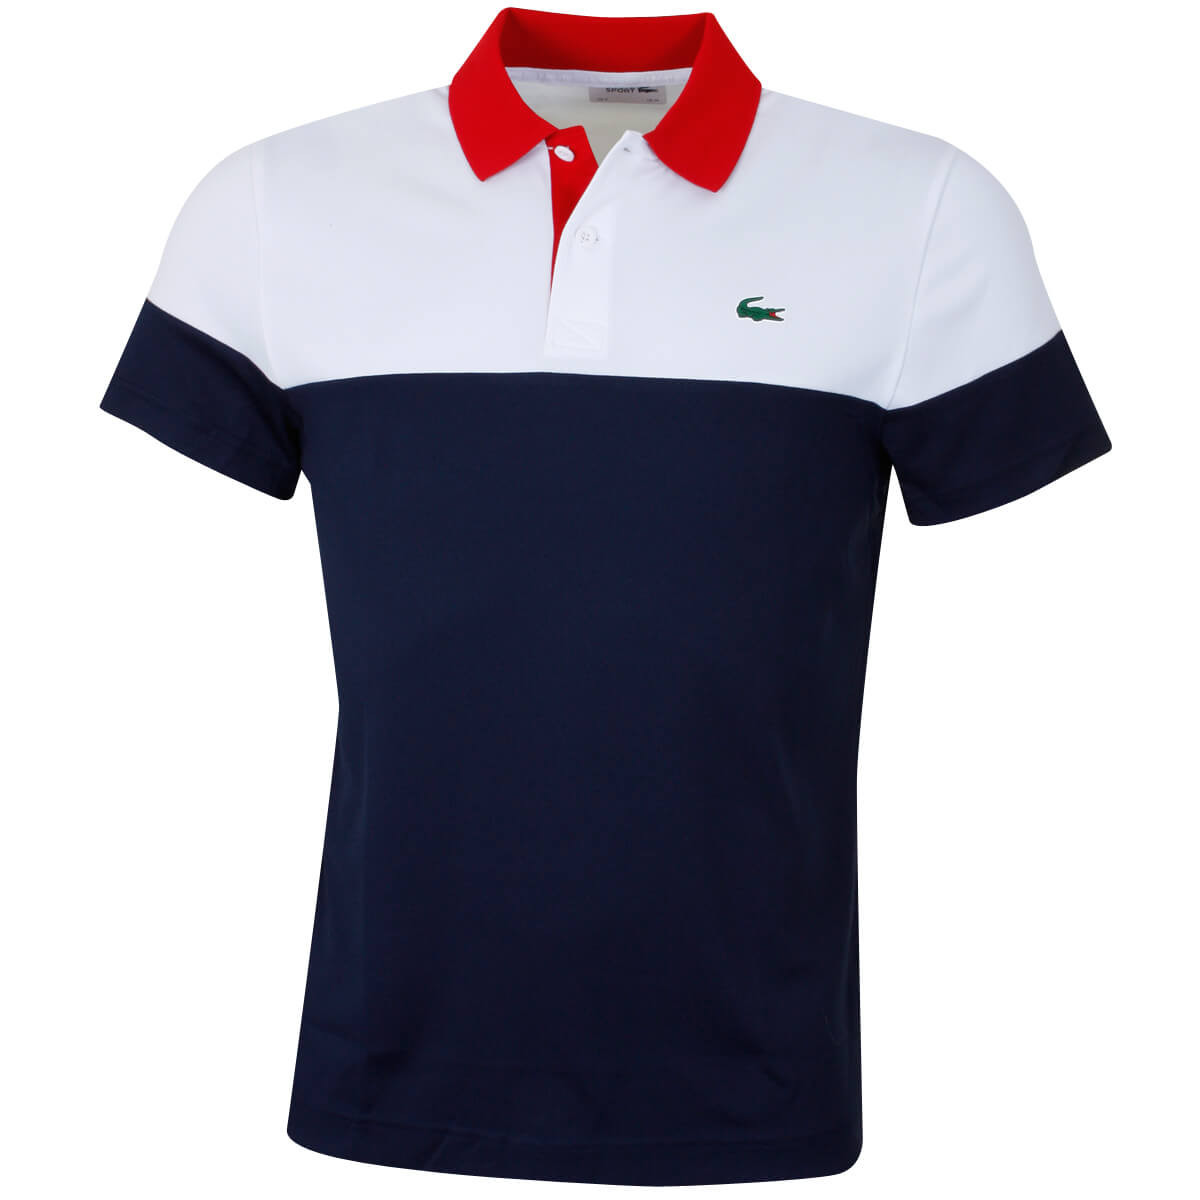 61c3bb16 Lacoste Mens 2019 Run Resistant Pique Polo Shirt